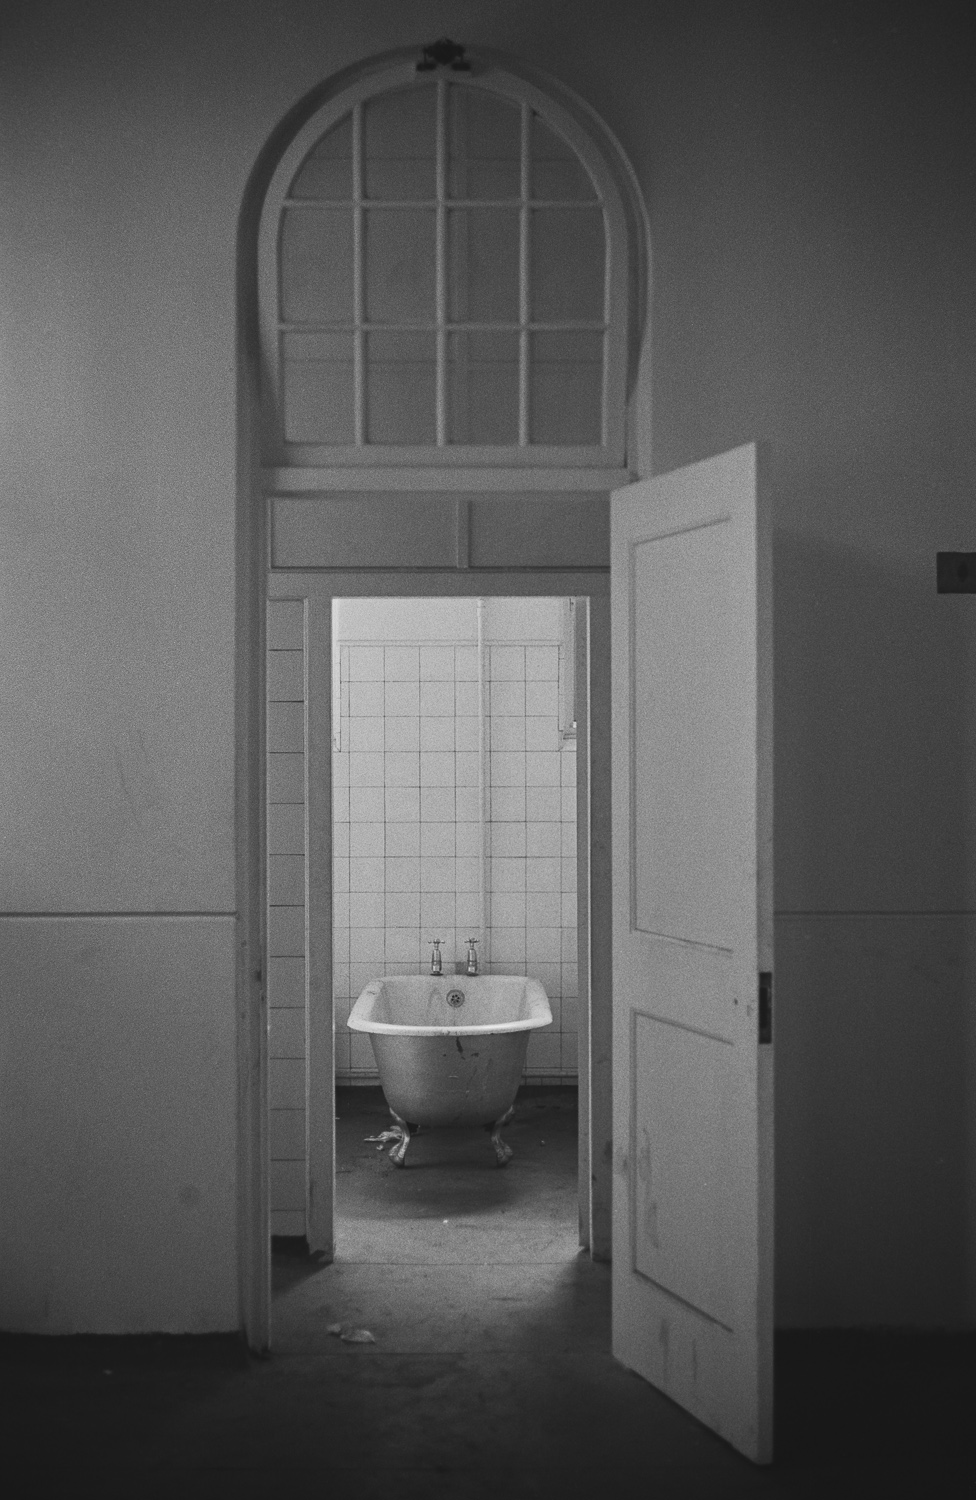 Bathroom - Johannesburg, 1971